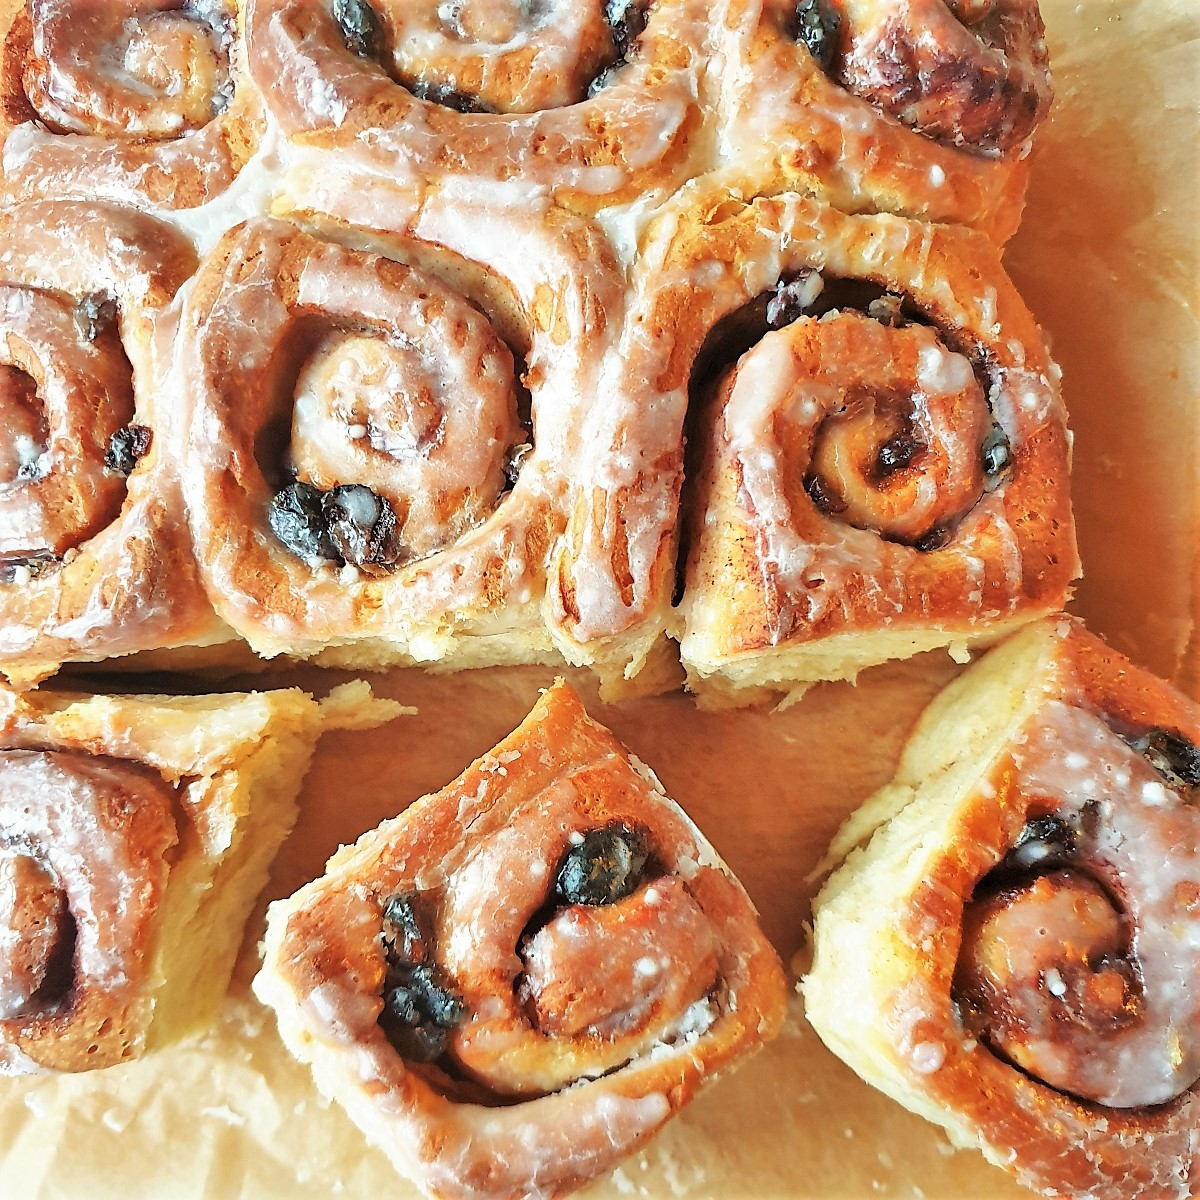 An overhead shot of a tray of chelsea buns.